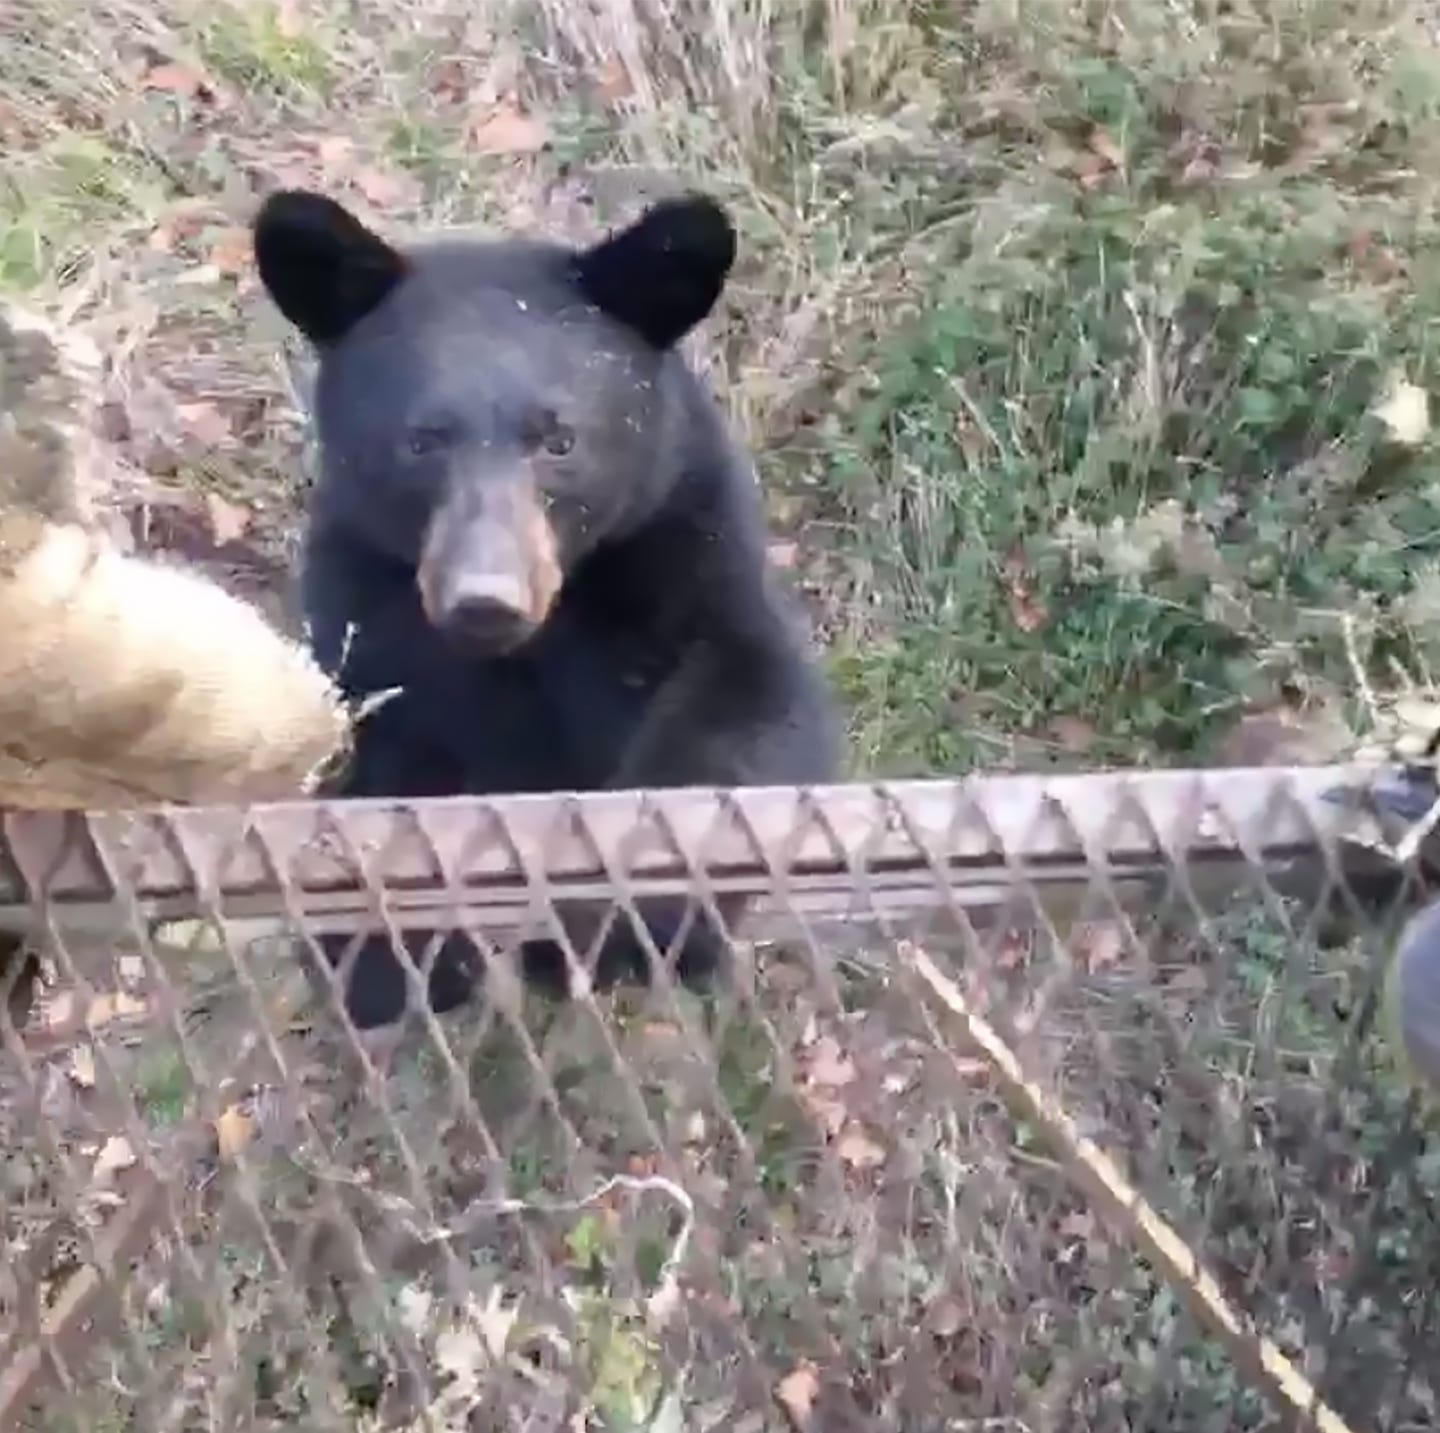 A bear joined two hunters in a Mississippi deer stand. They had just eaten honeybuns.